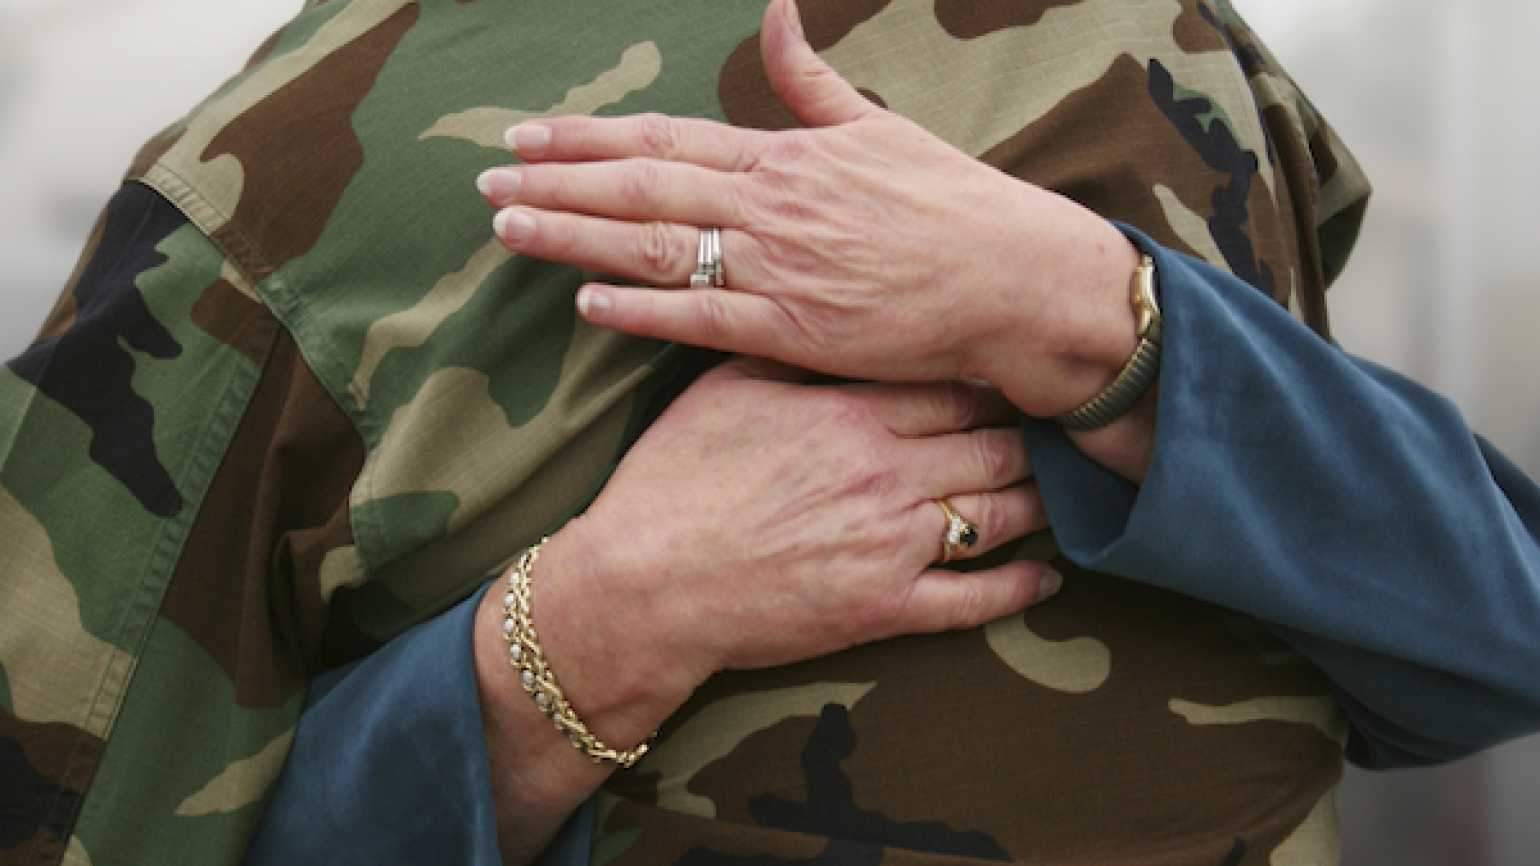 A military mom shares what she's learned from having a family member serve.